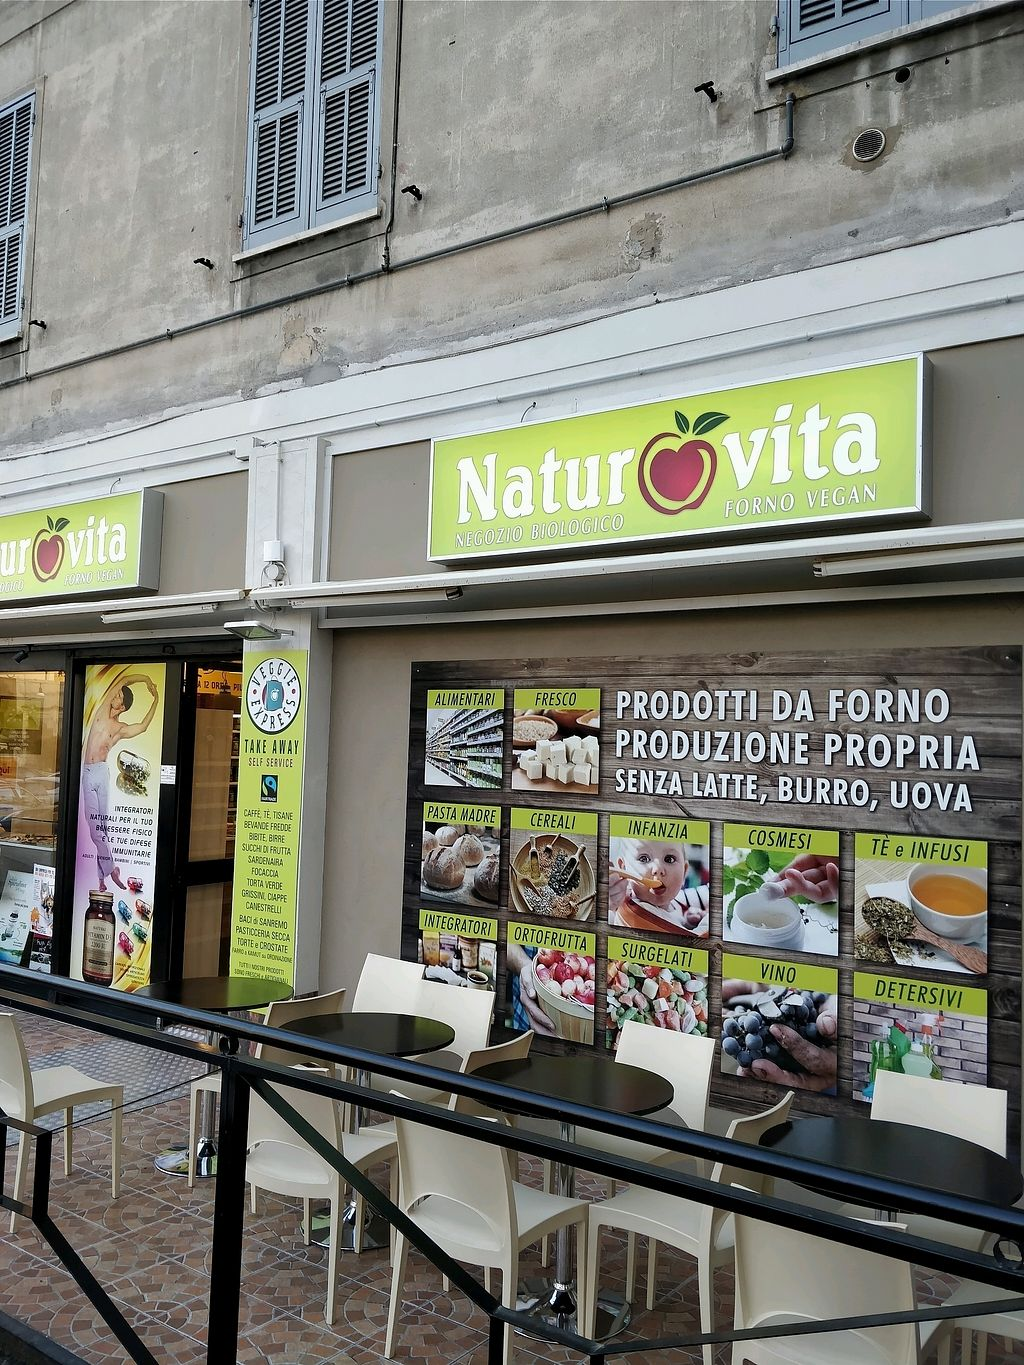 """Photo of Naturvita Bio  by <a href=""""/members/profile/Logge"""">Logge</a> <br/>the front <br/> April 2, 2018  - <a href='/contact/abuse/image/115606/379956'>Report</a>"""